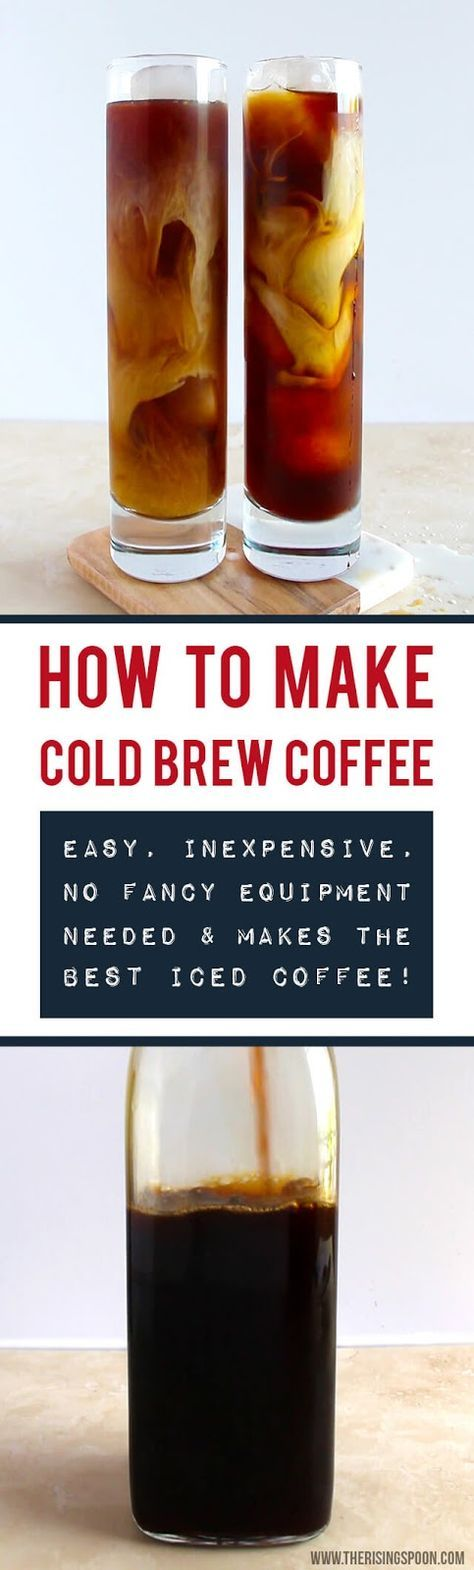 Learn how to make the best cold brew coffee at home using two simple ingredients and a few household items likely sitting in your kitchen right now. This cold infusion method produces gloriously smooth, strong coffee that's less acidic, not bitter, and tastes just like the expensive coffeehouse stuff.